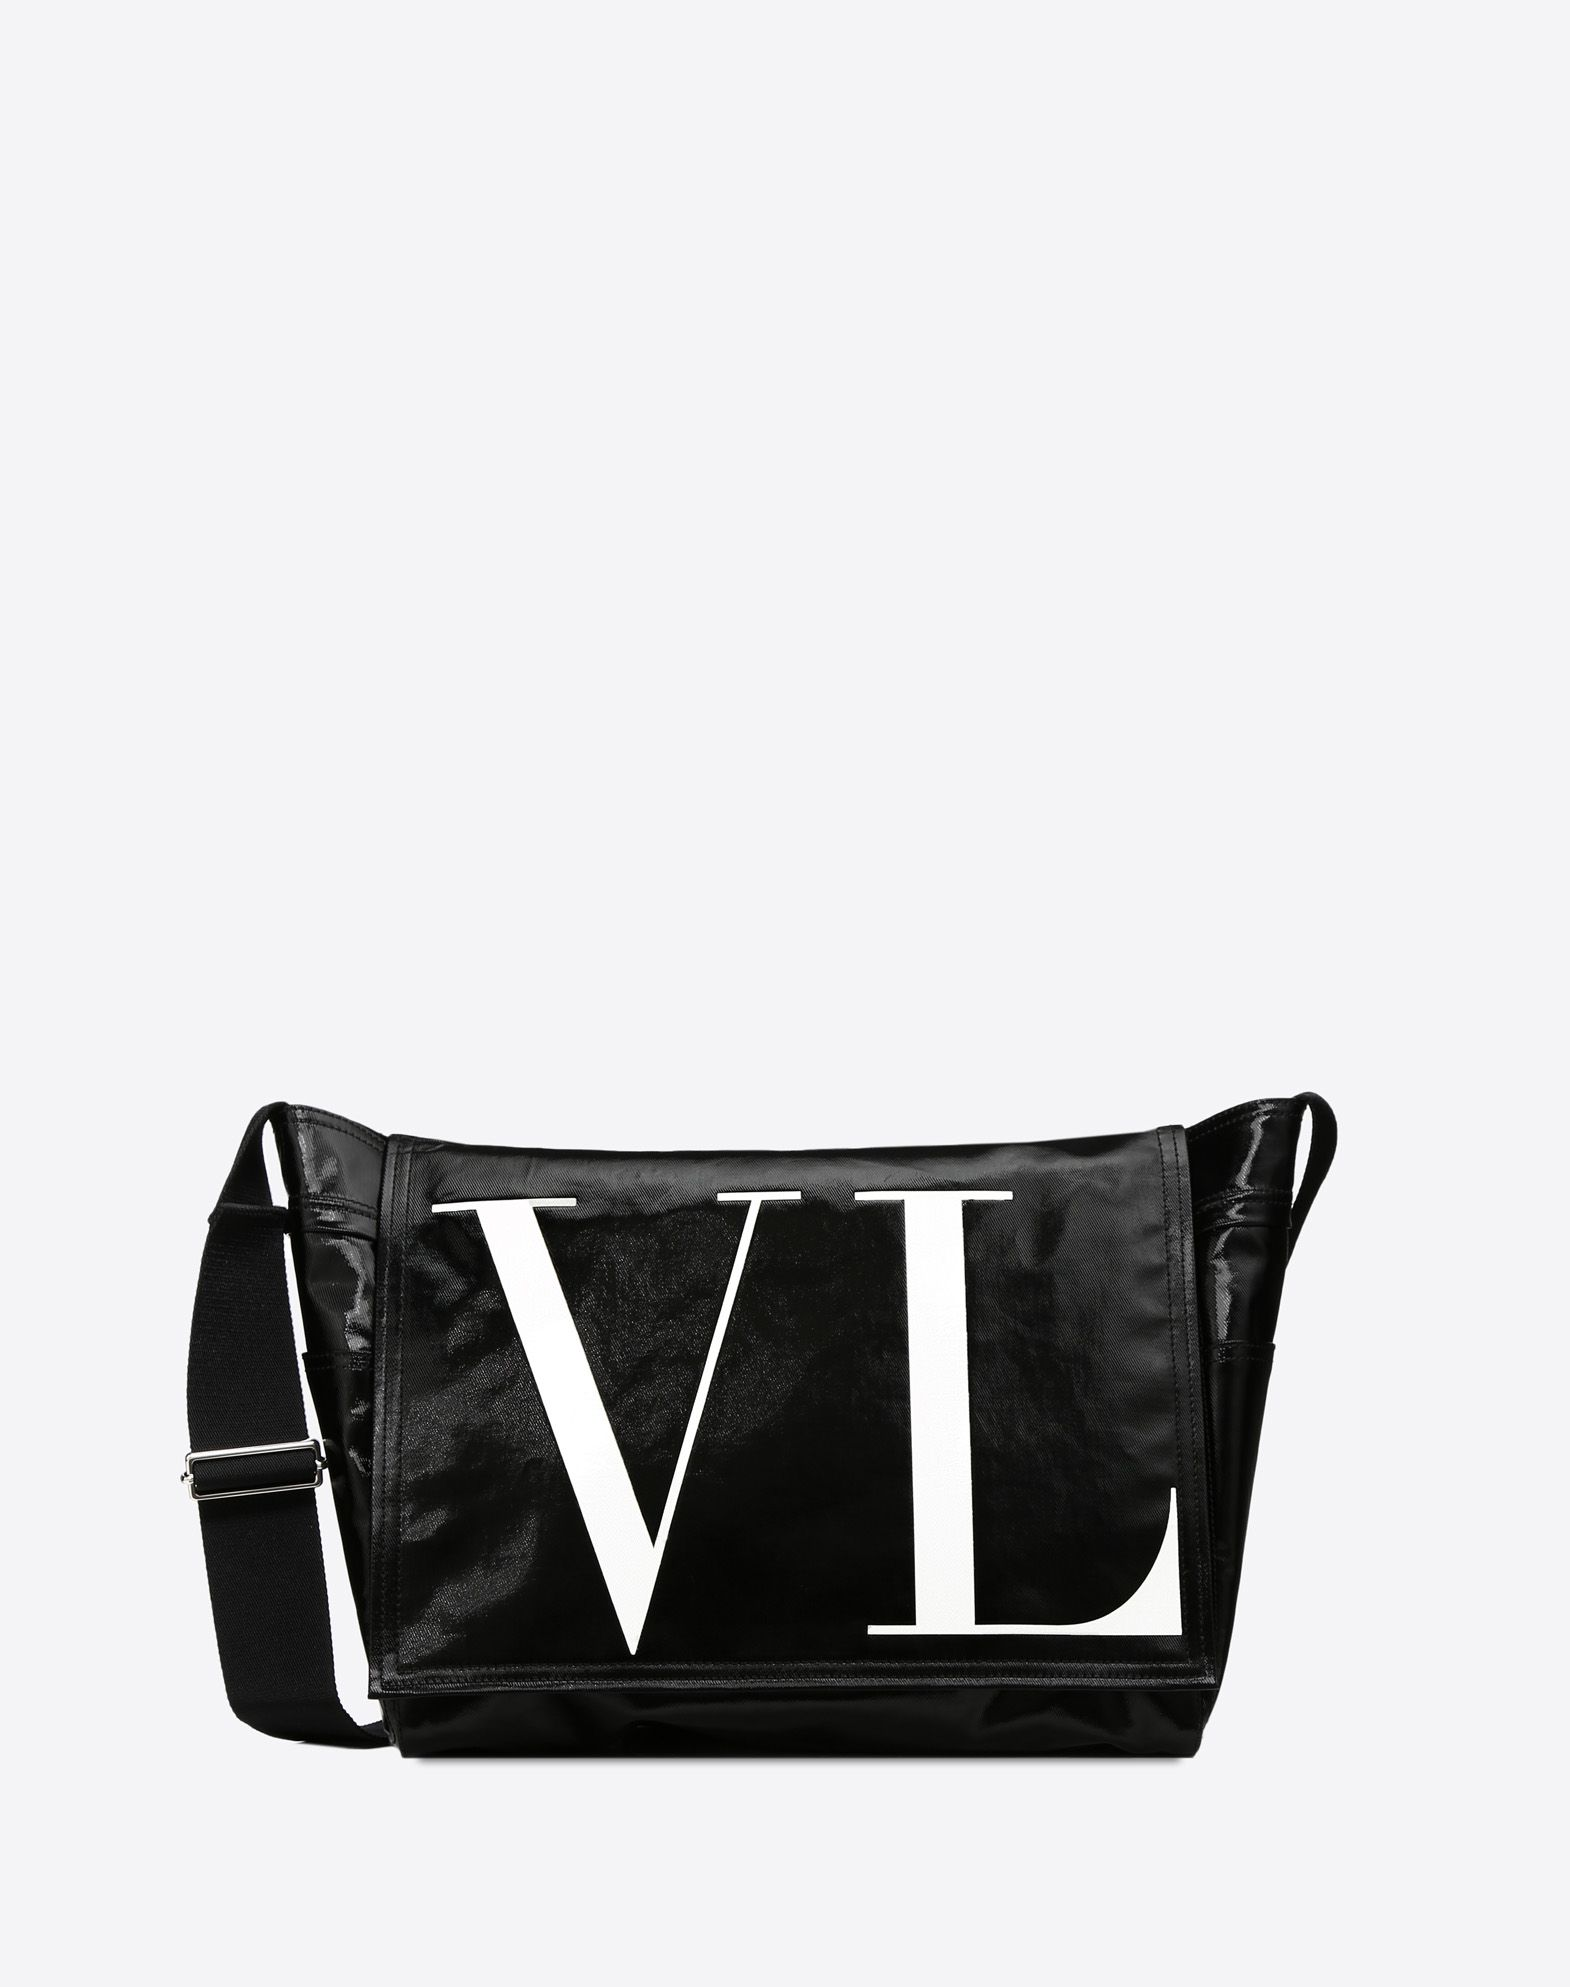 VLTN MEDIUM SHINY CANVAS MESSENGER BAG